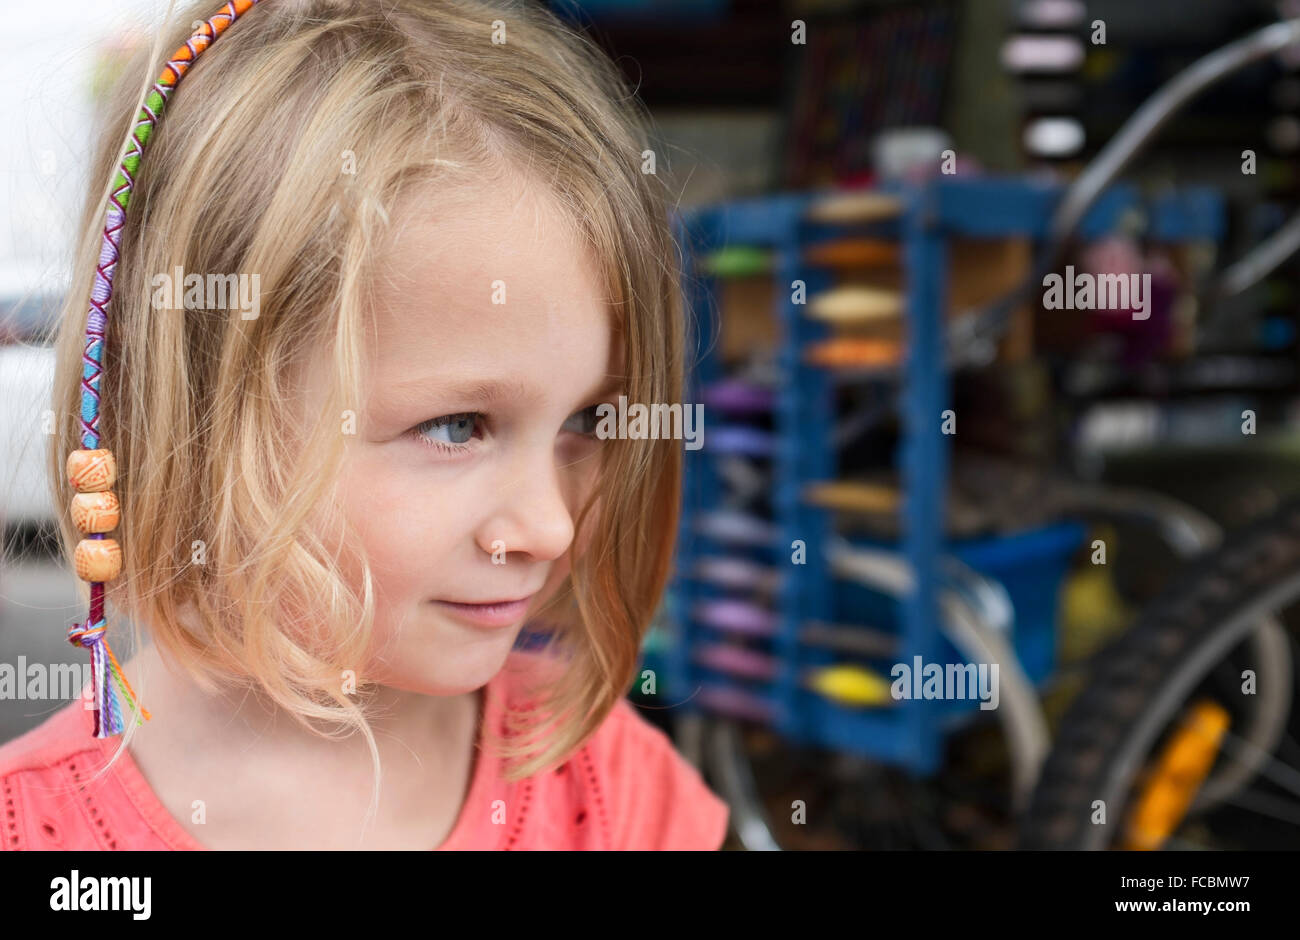 5 year old girl just had her hair braided with reals out of focus in background - Stock Image